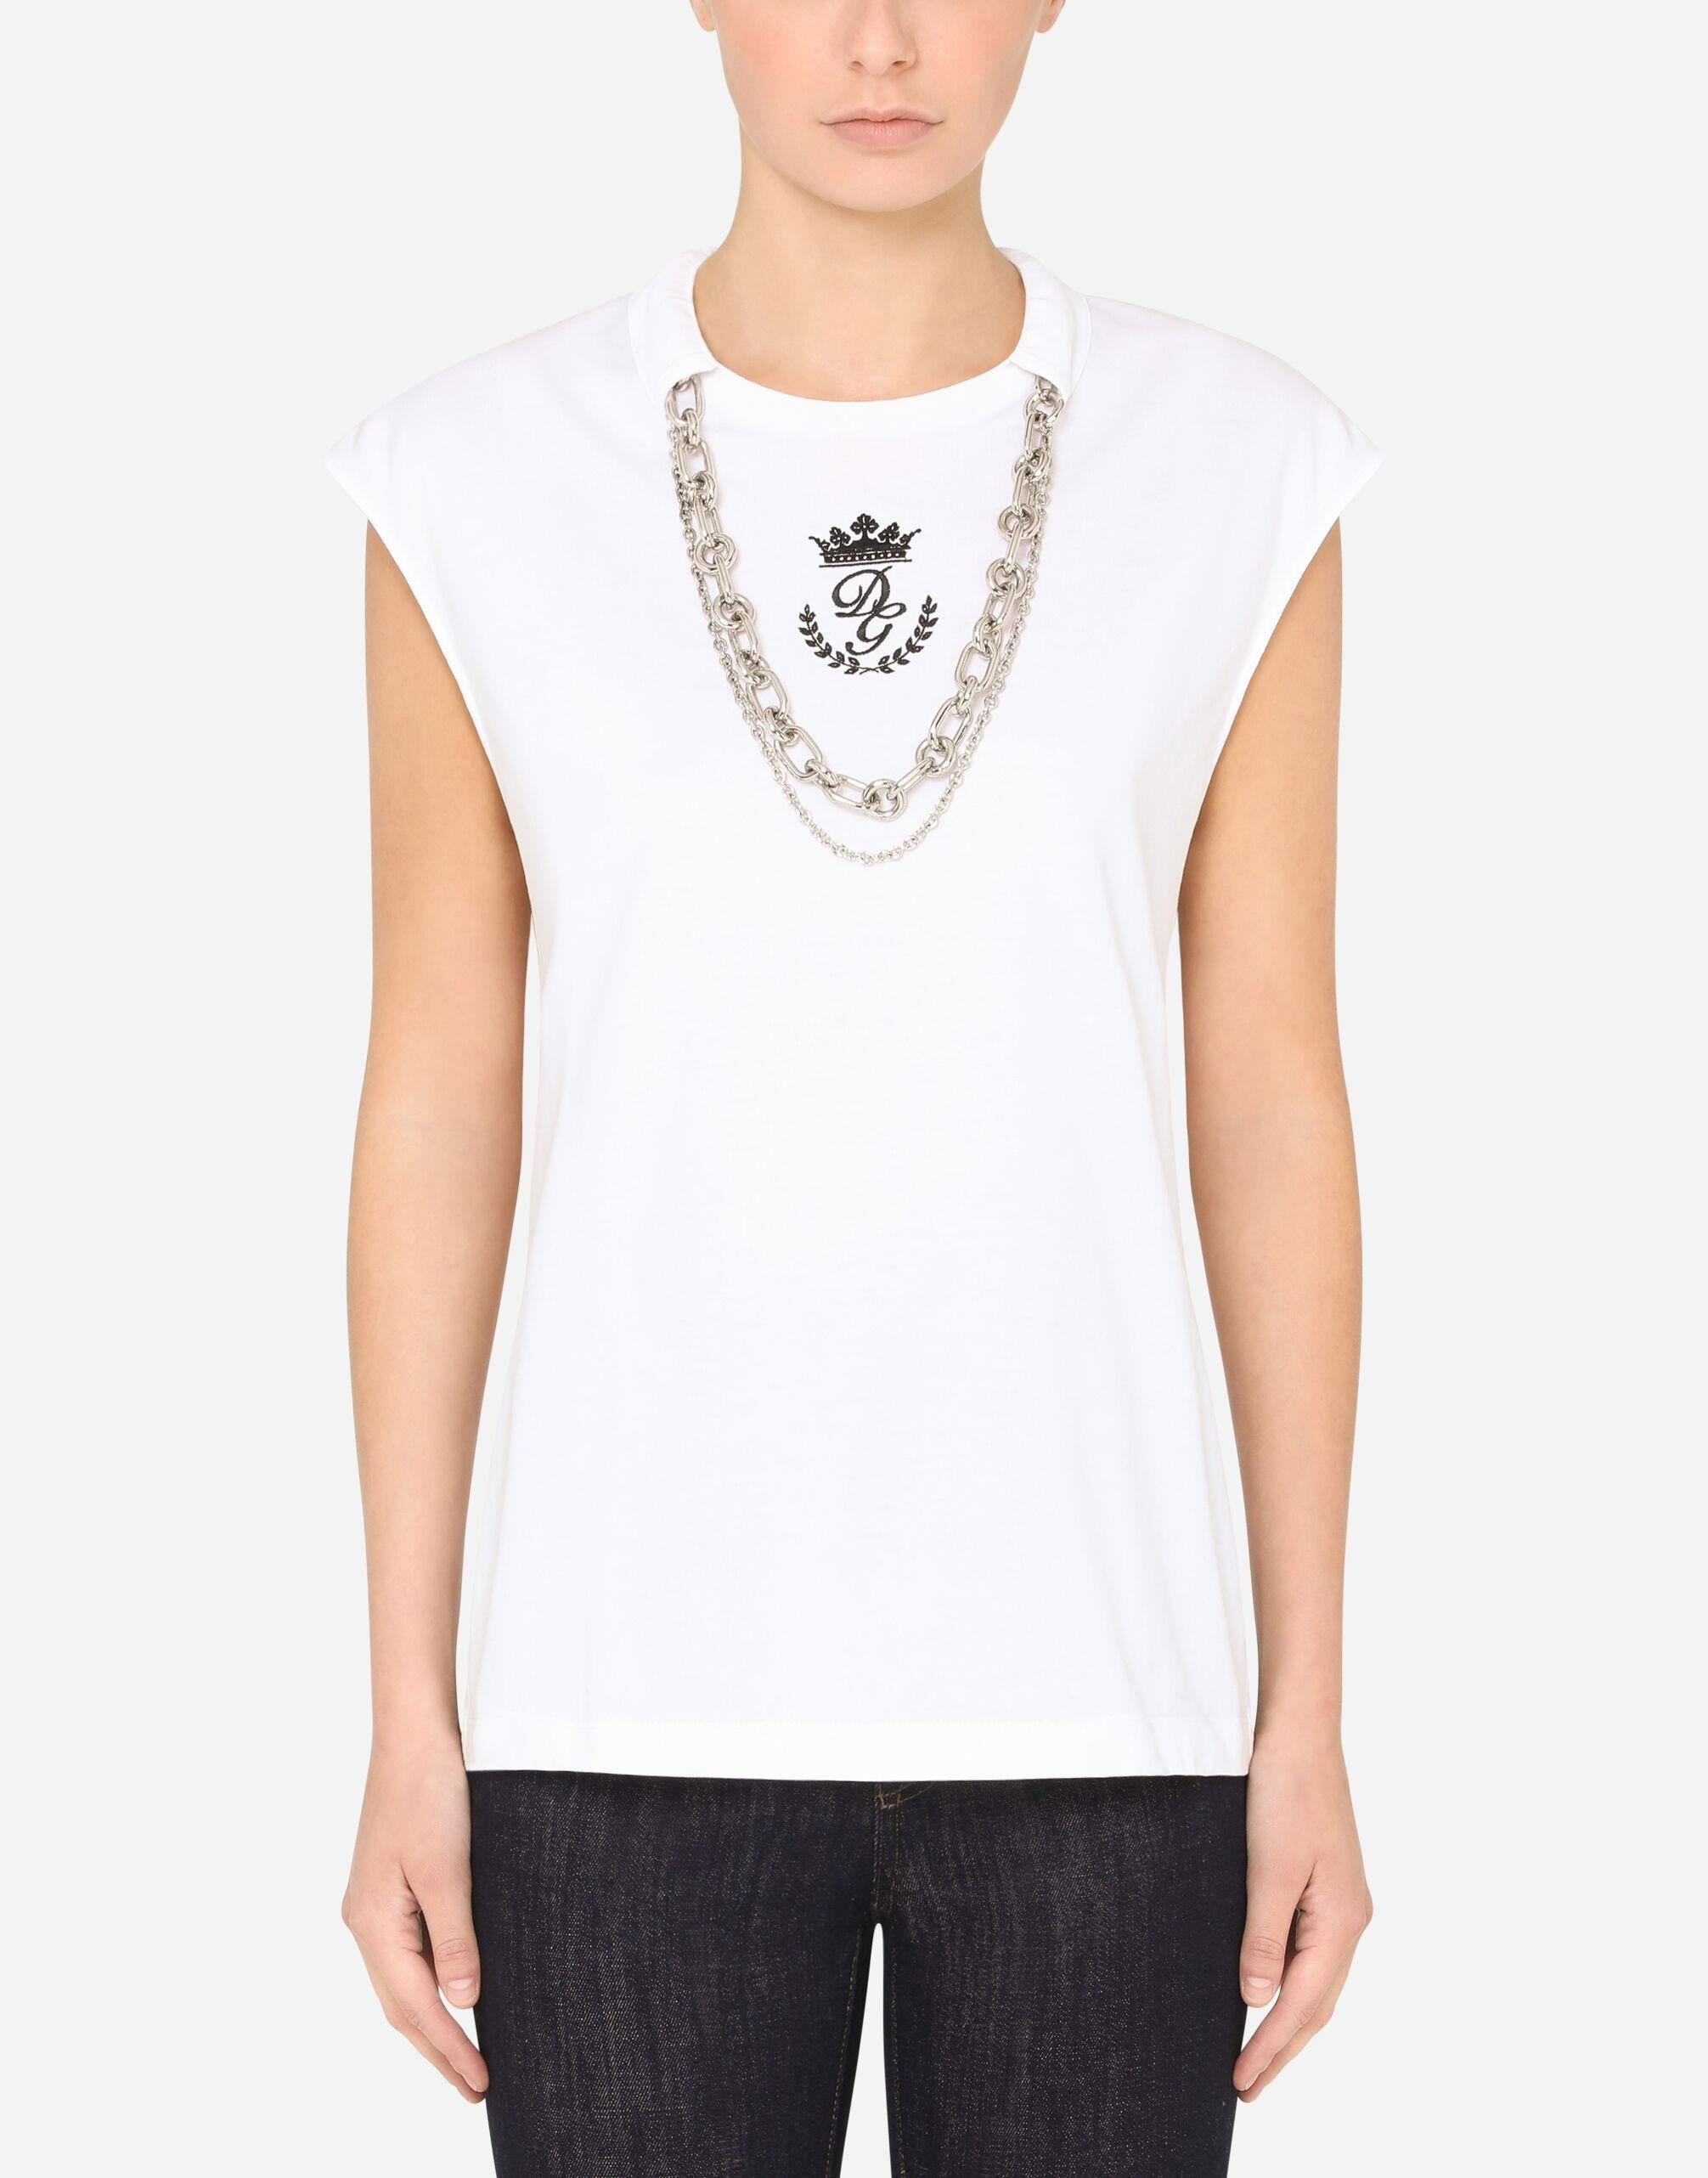 Jersey t-shirt with necklaces